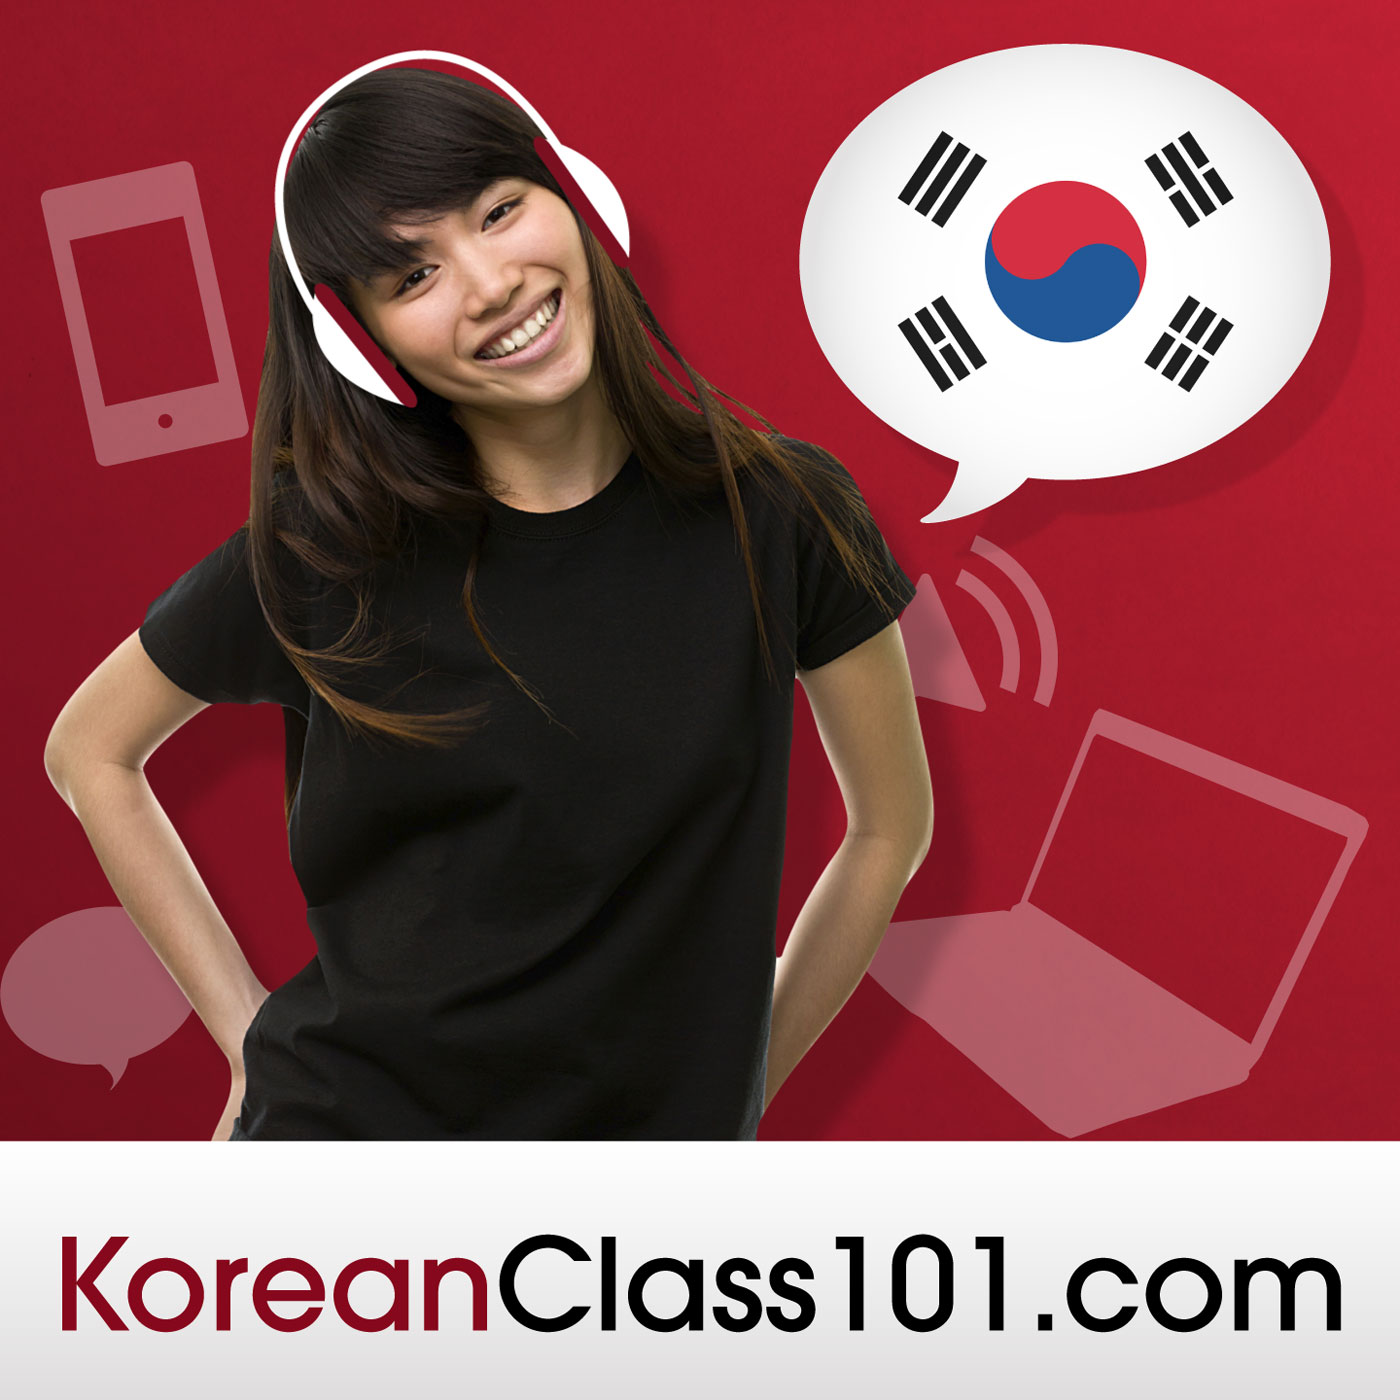 Learn Korean | KoreanClass101.com